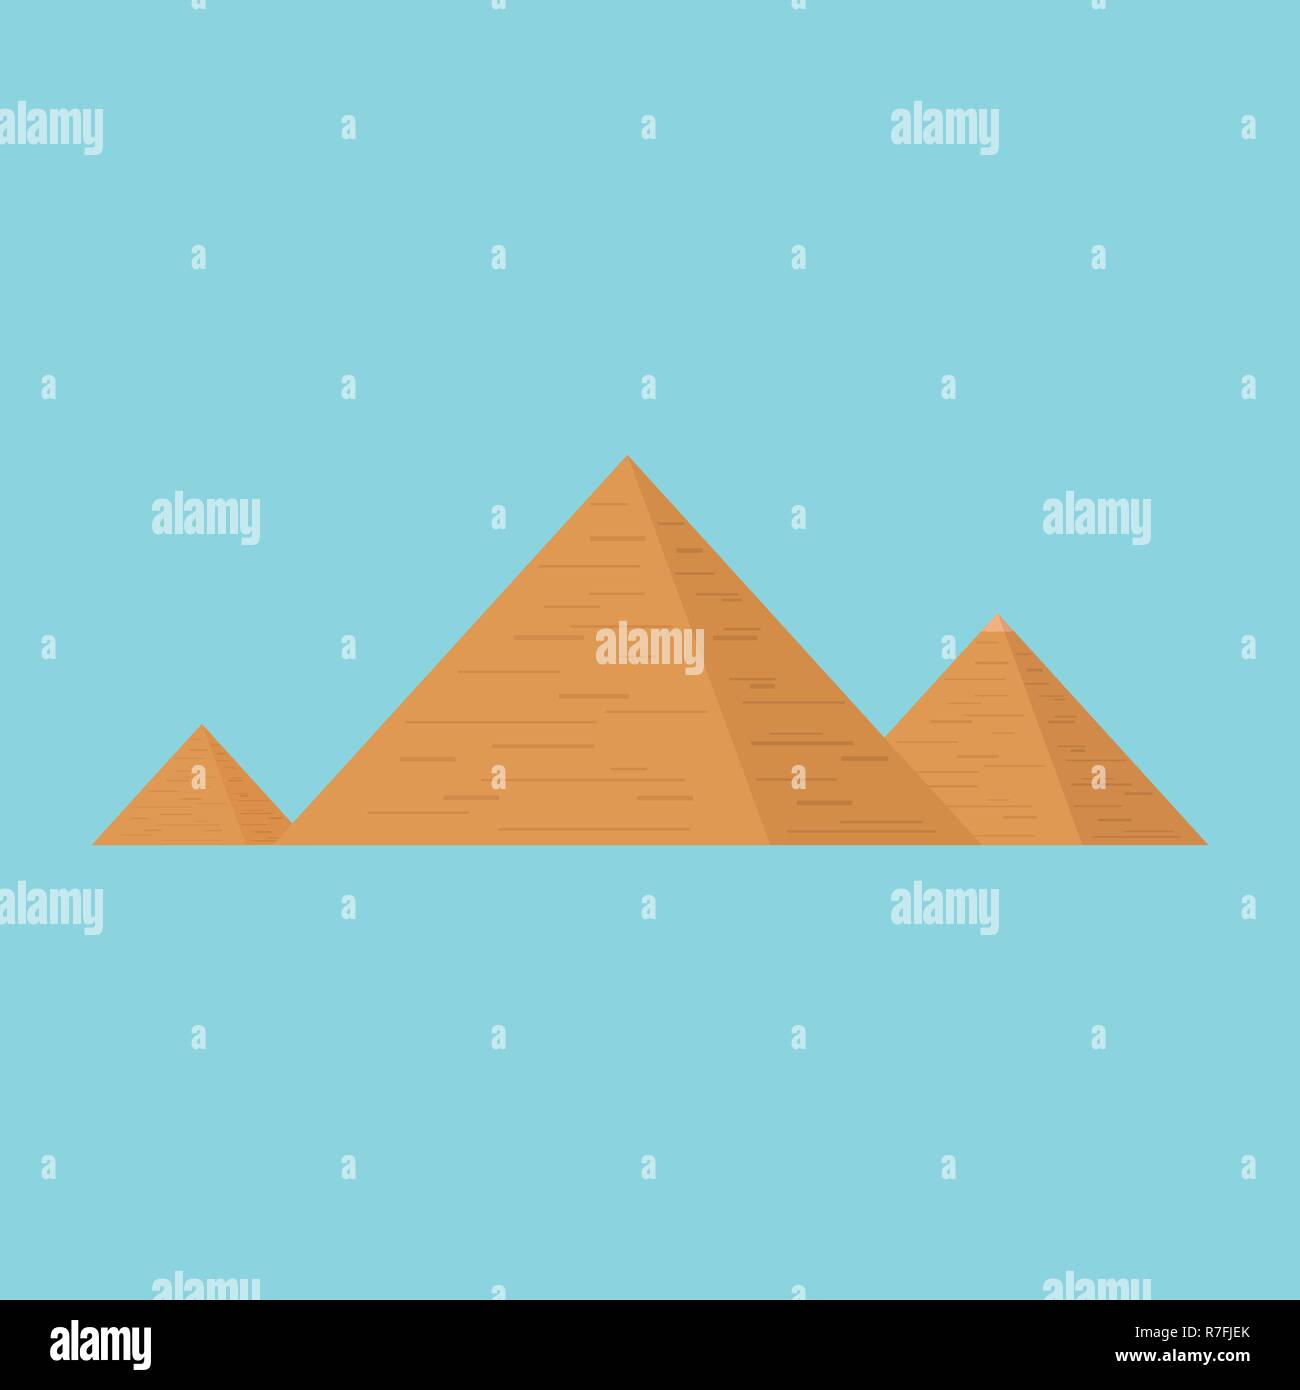 Pyramids flat design icon with blue background. - Stock Vector